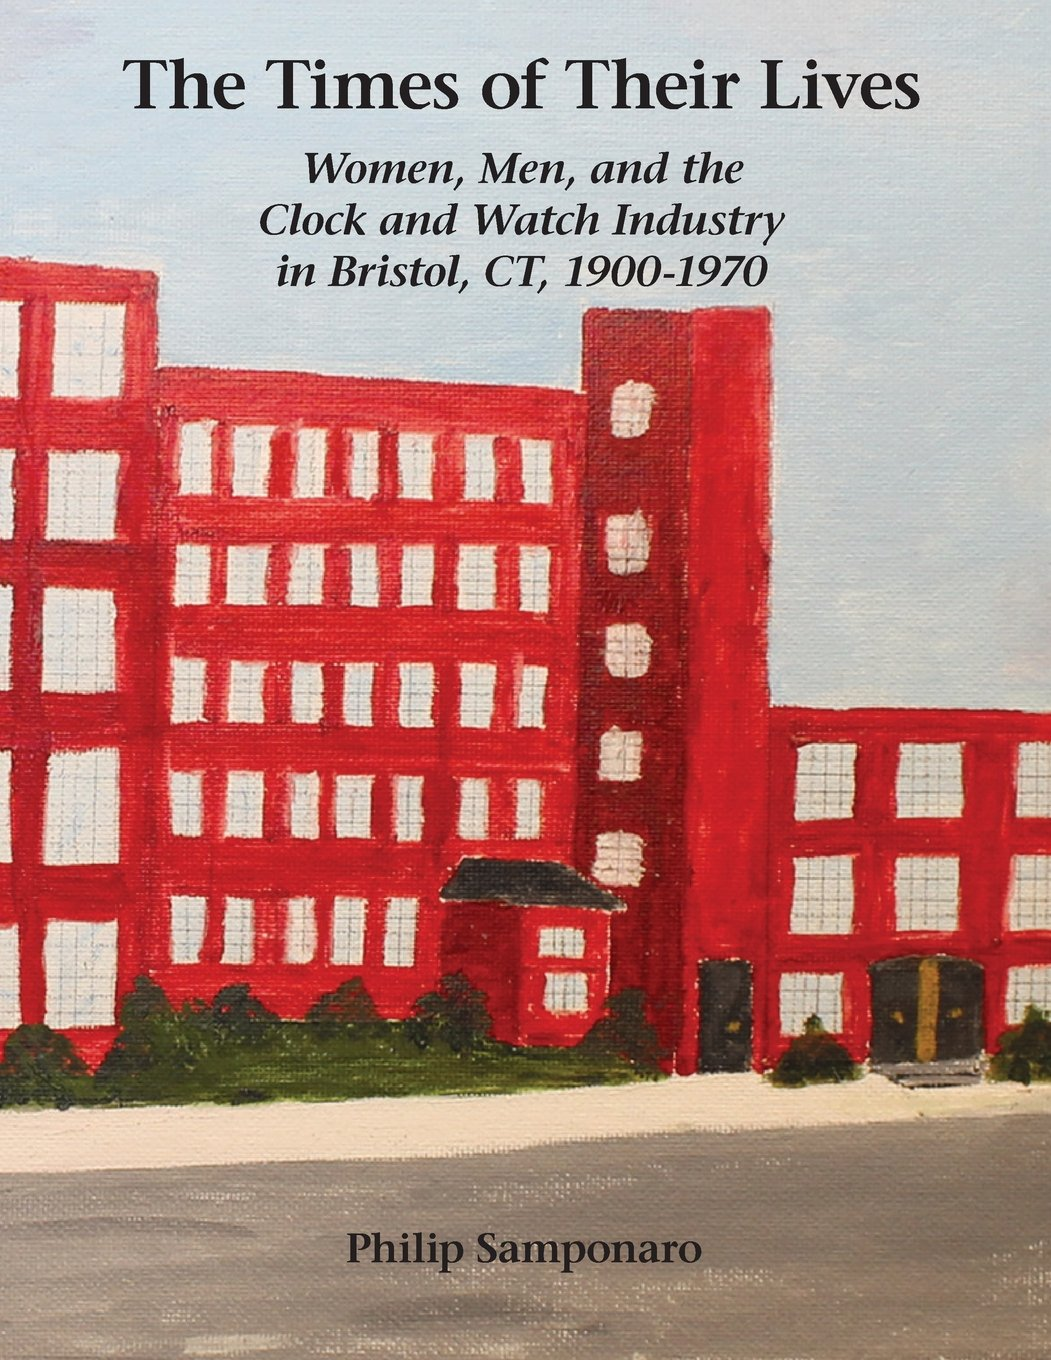 The Times of Their Lives: Women, Men, and the  Clock and Watch Industry in Bristol, CT, 1900-1970